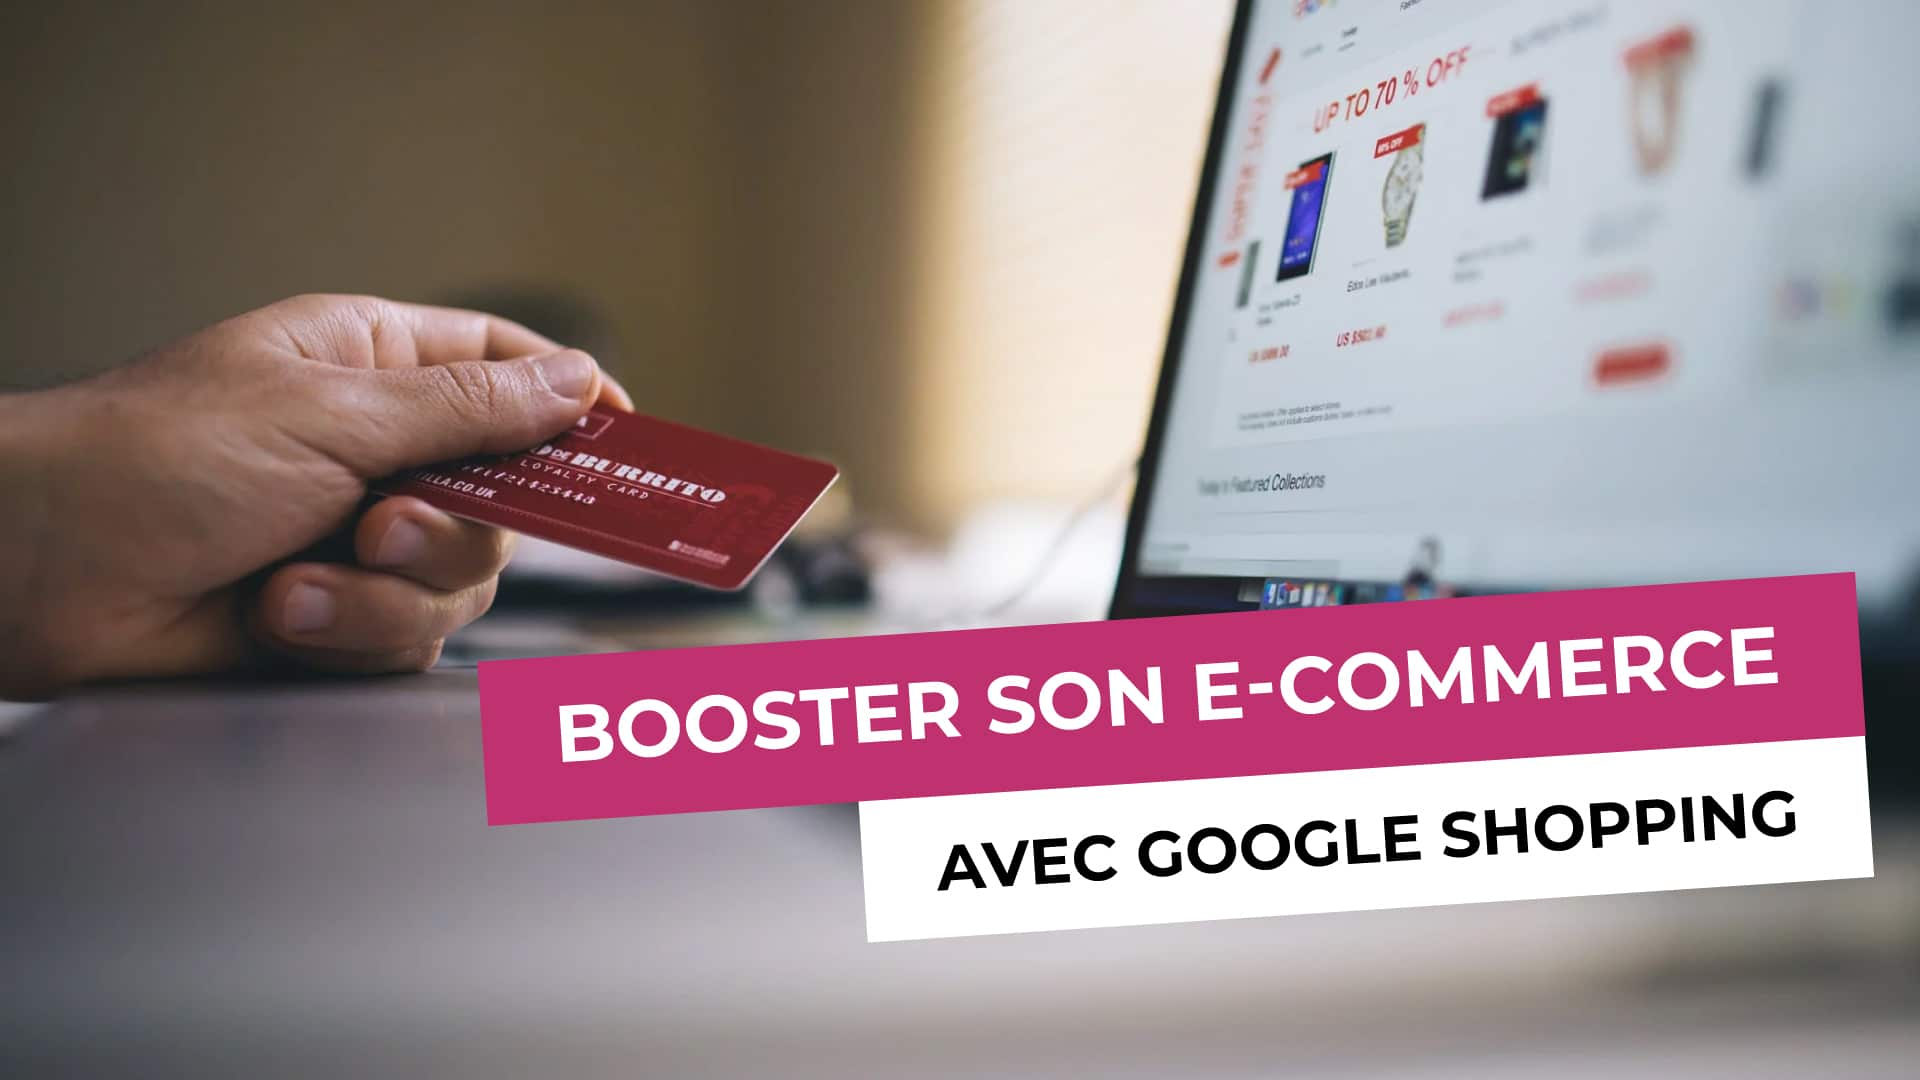 Booster son e-commerce avec Google Shopping